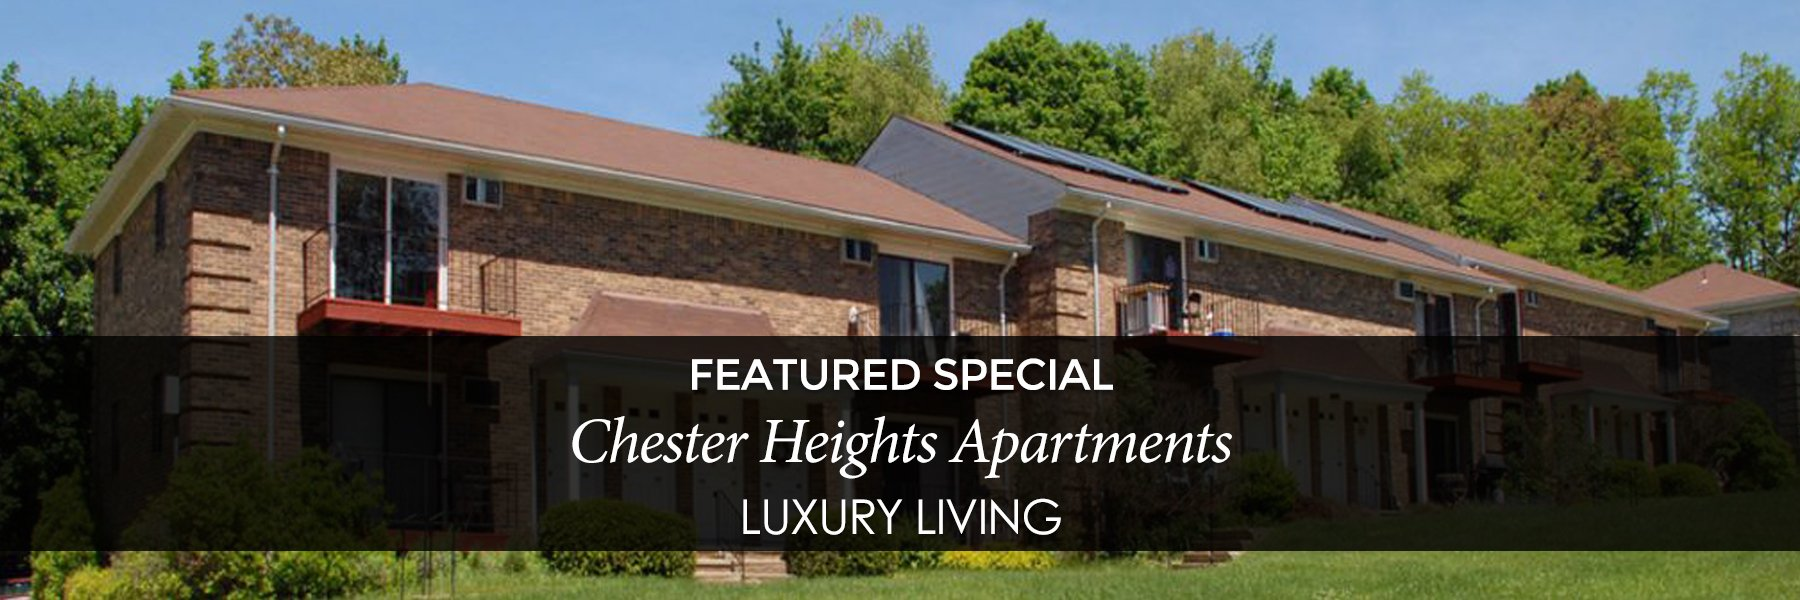 Chester Heights Apartments For Rent in Orange County, NY Specials